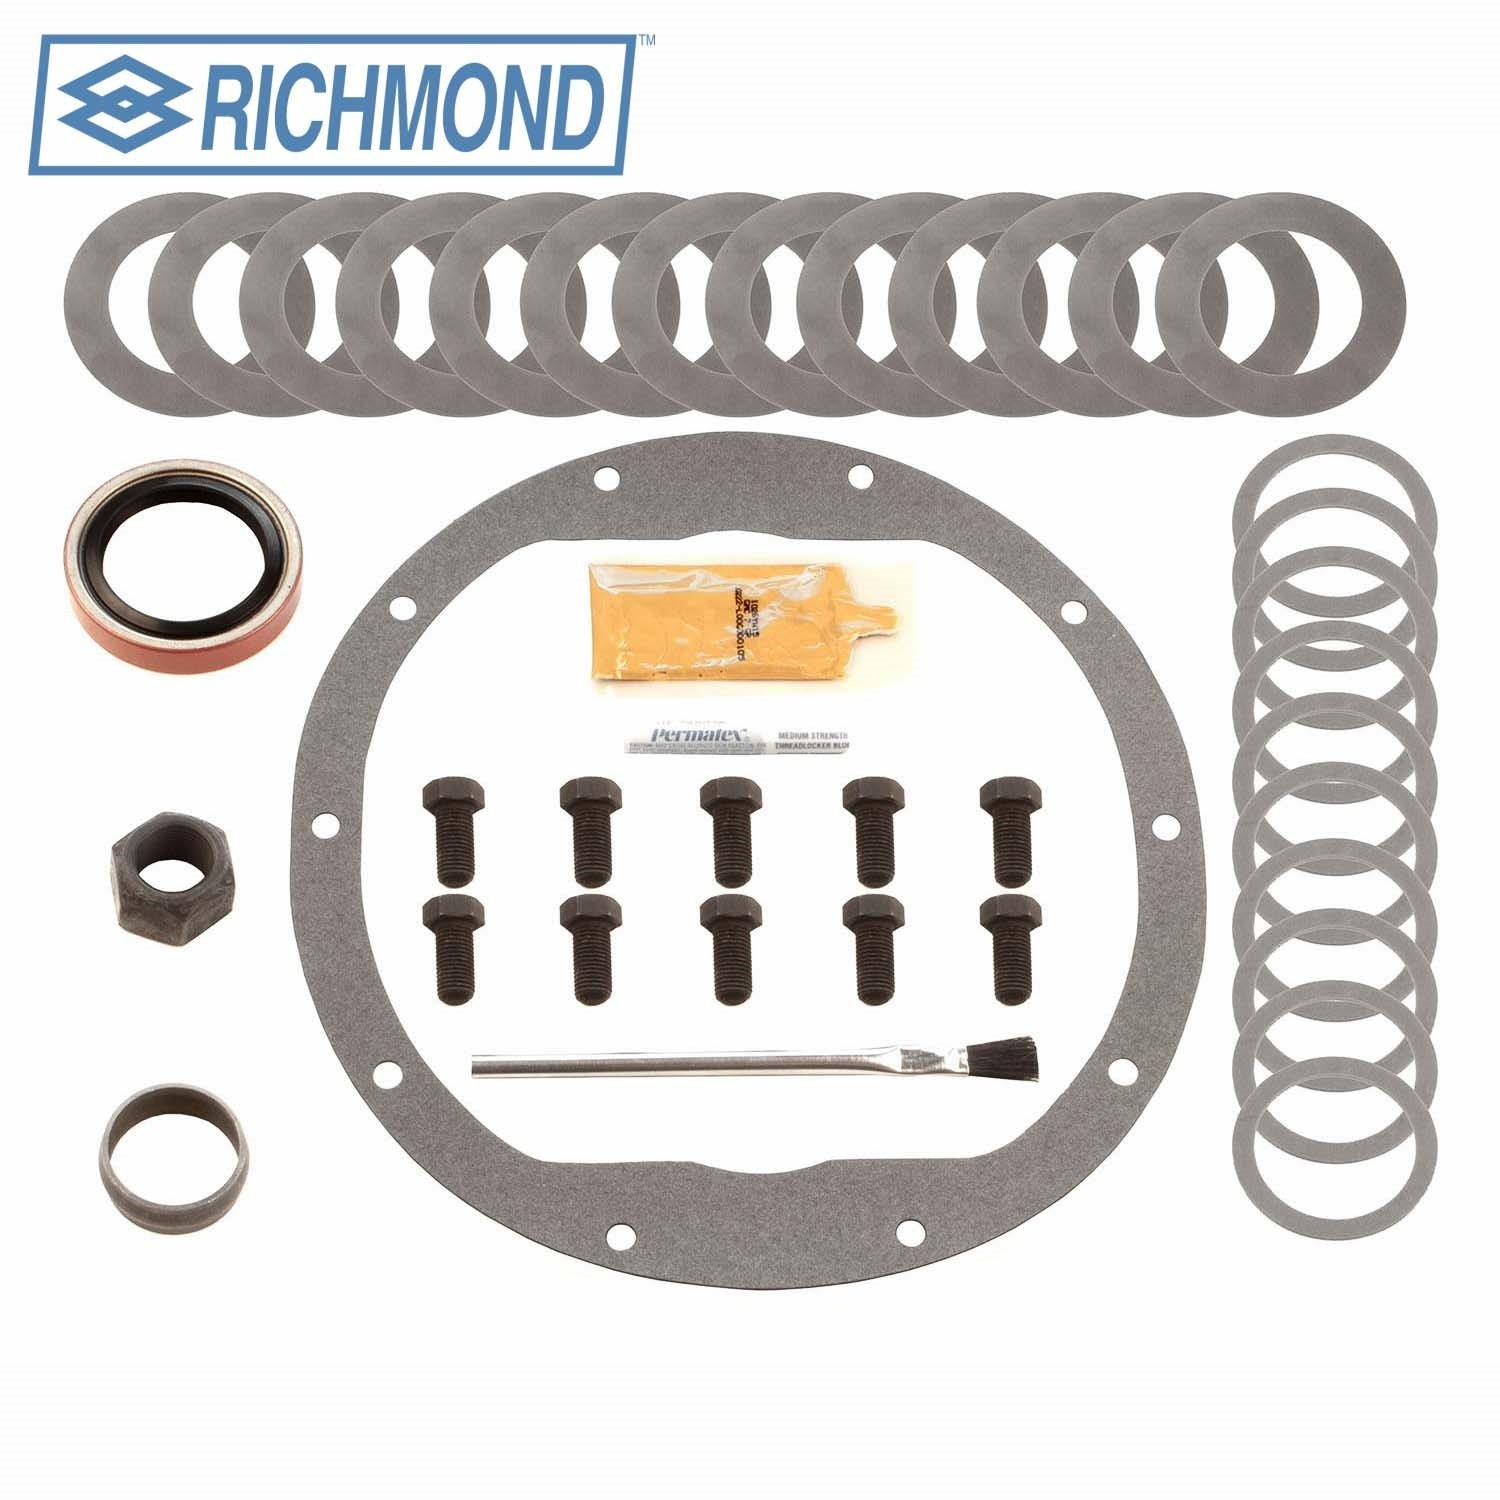 Richmond Gear 831021B Gm 1/2 Install Kit 8.5Car